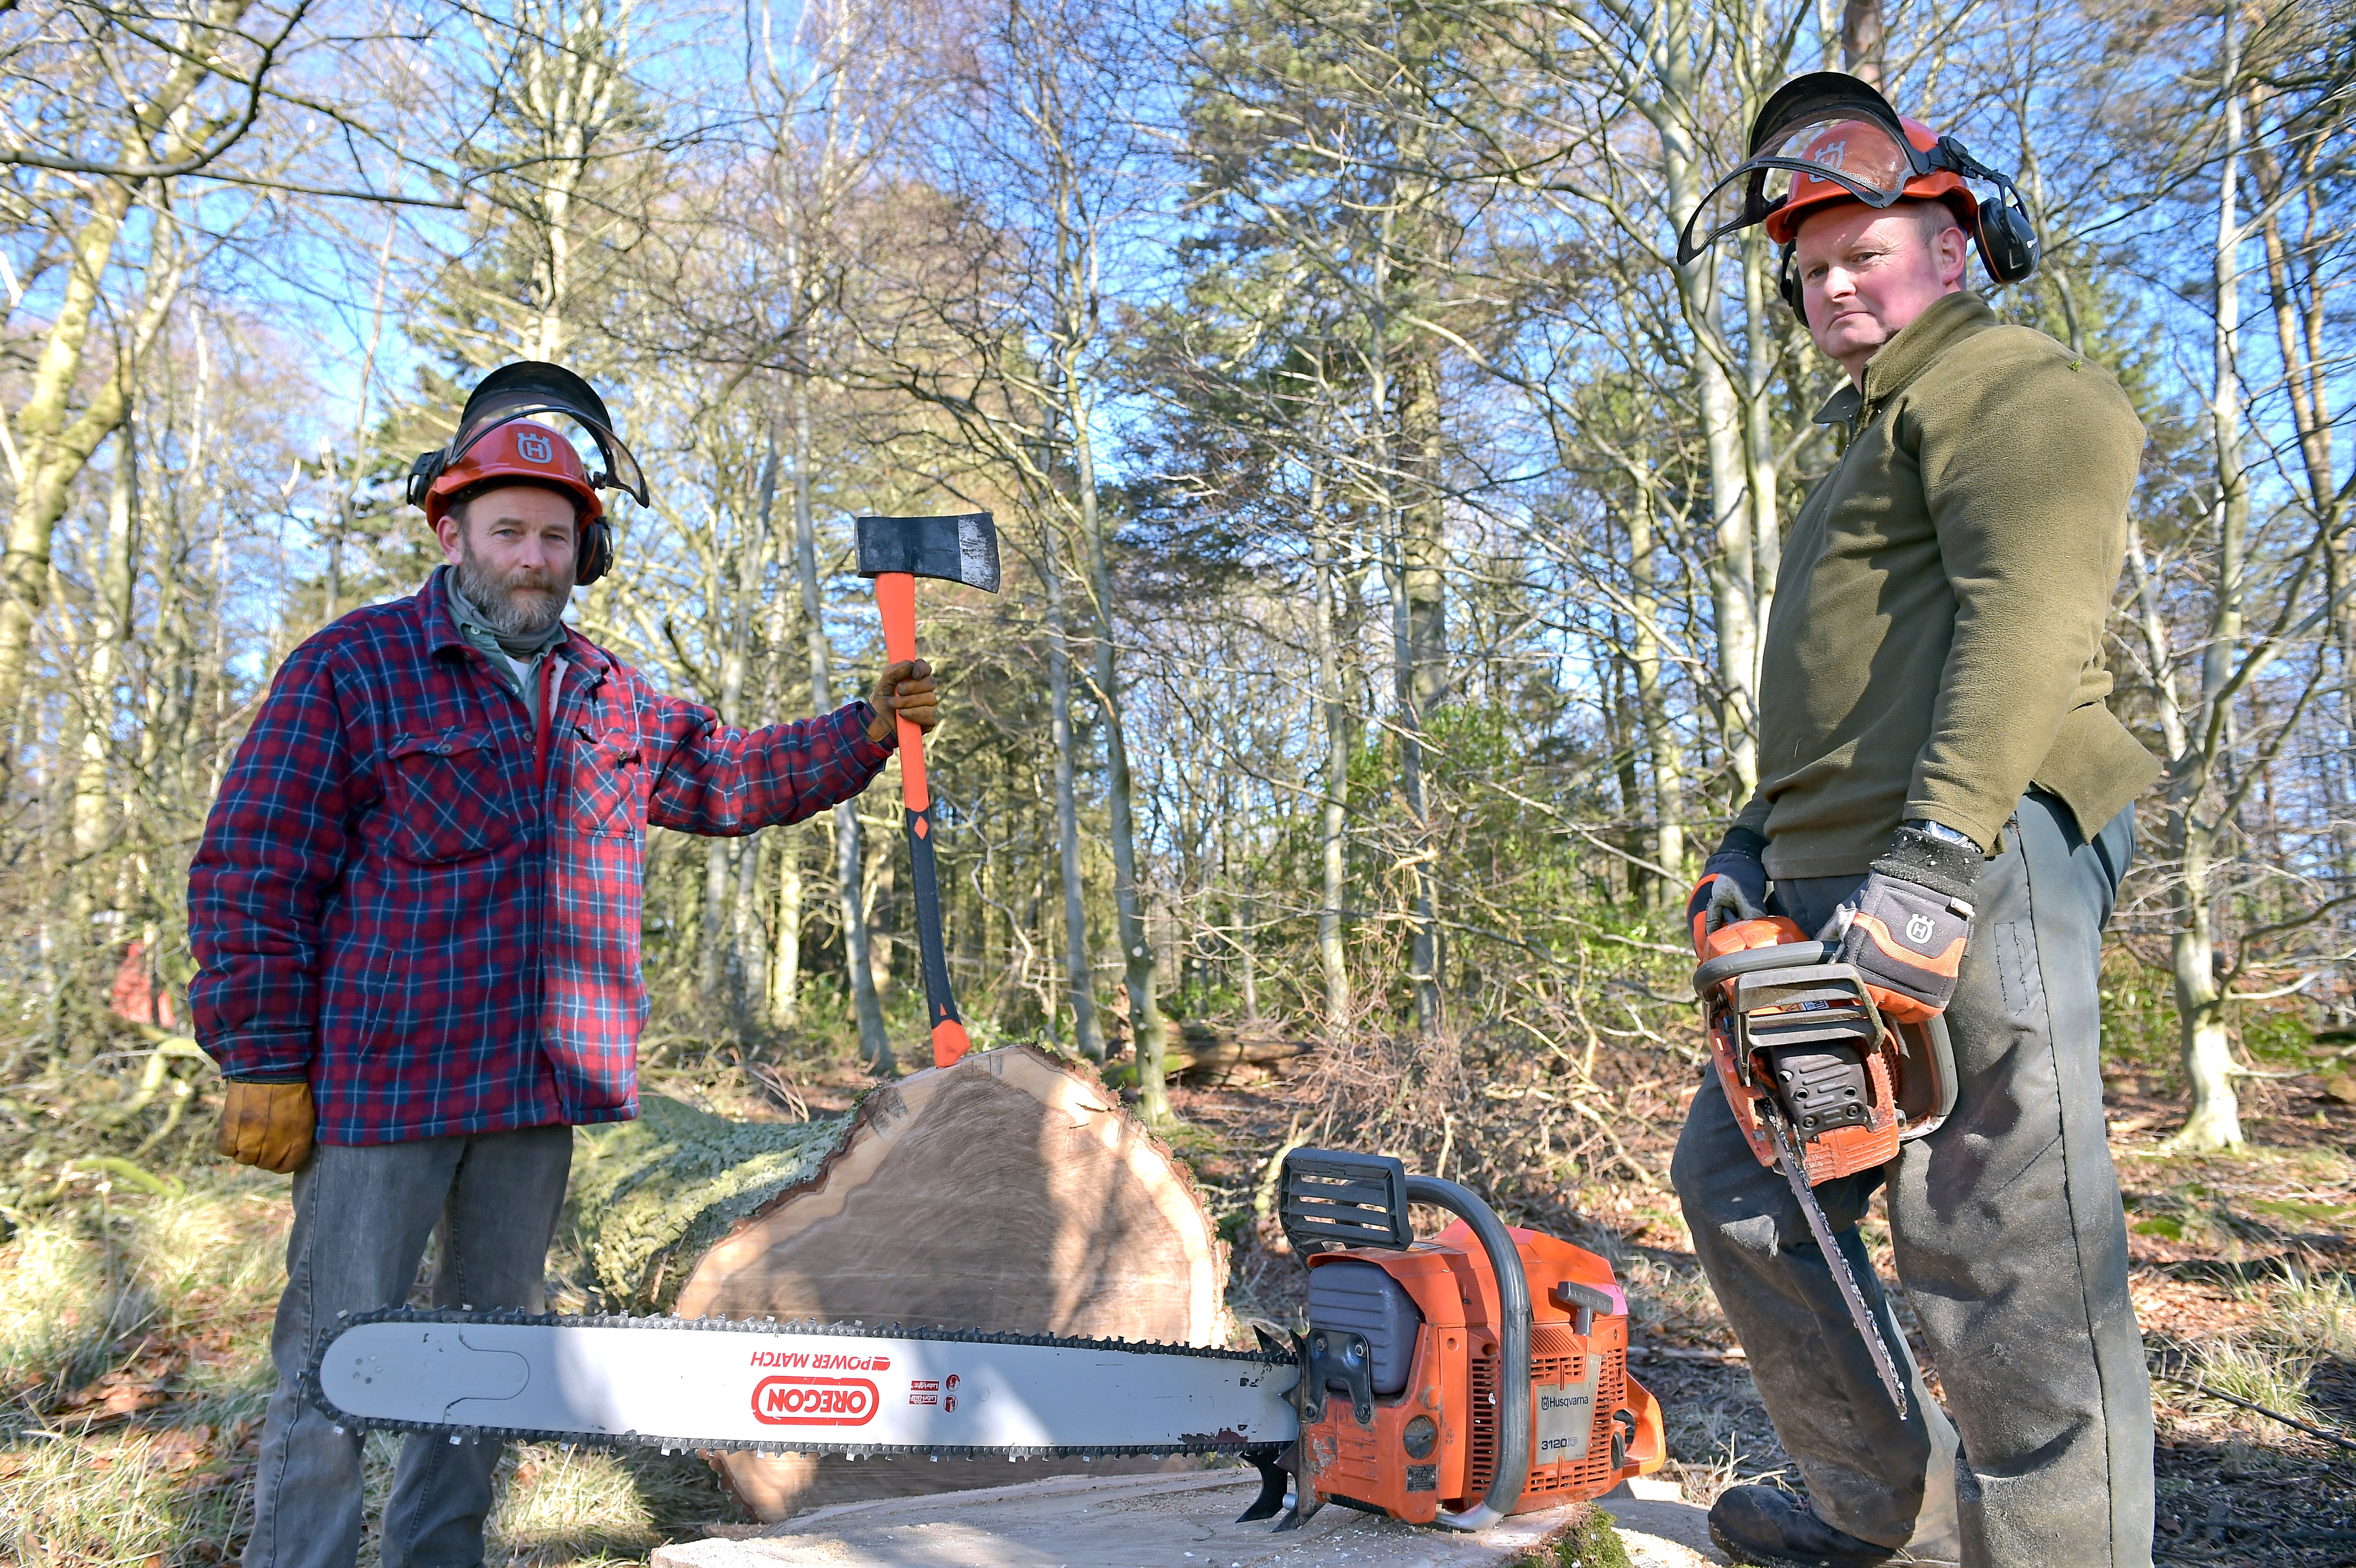 A Scottish Estate Donates Timber For The Renovation Of HMS Victory